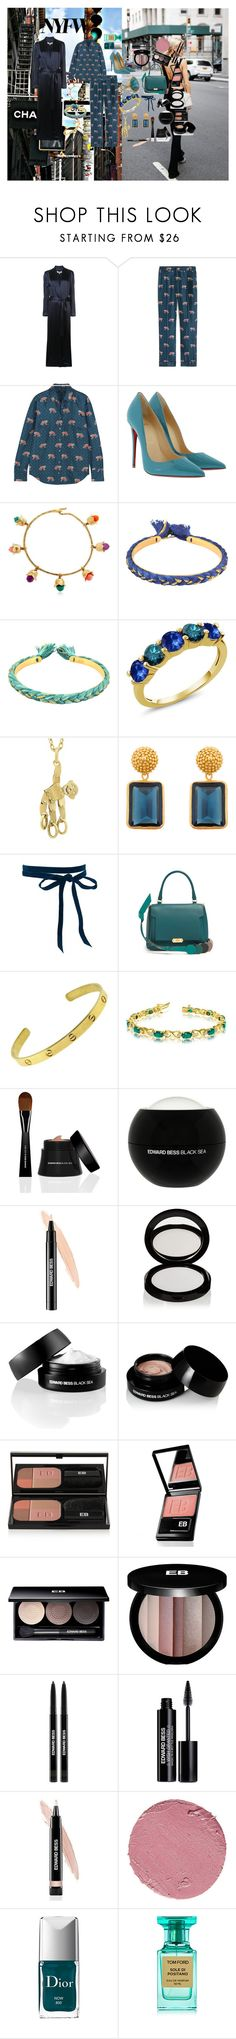 """New York Fashion Week: Pajama Formula"" by atho-12345 ❤ liked on Polyvore featuring Galvan, J.Crew, Christian Louboutin, Aurélie Bidermann, Pomellato, Julie Vos, Anya Hindmarch, Cartier, Allurez and Edward Bess"